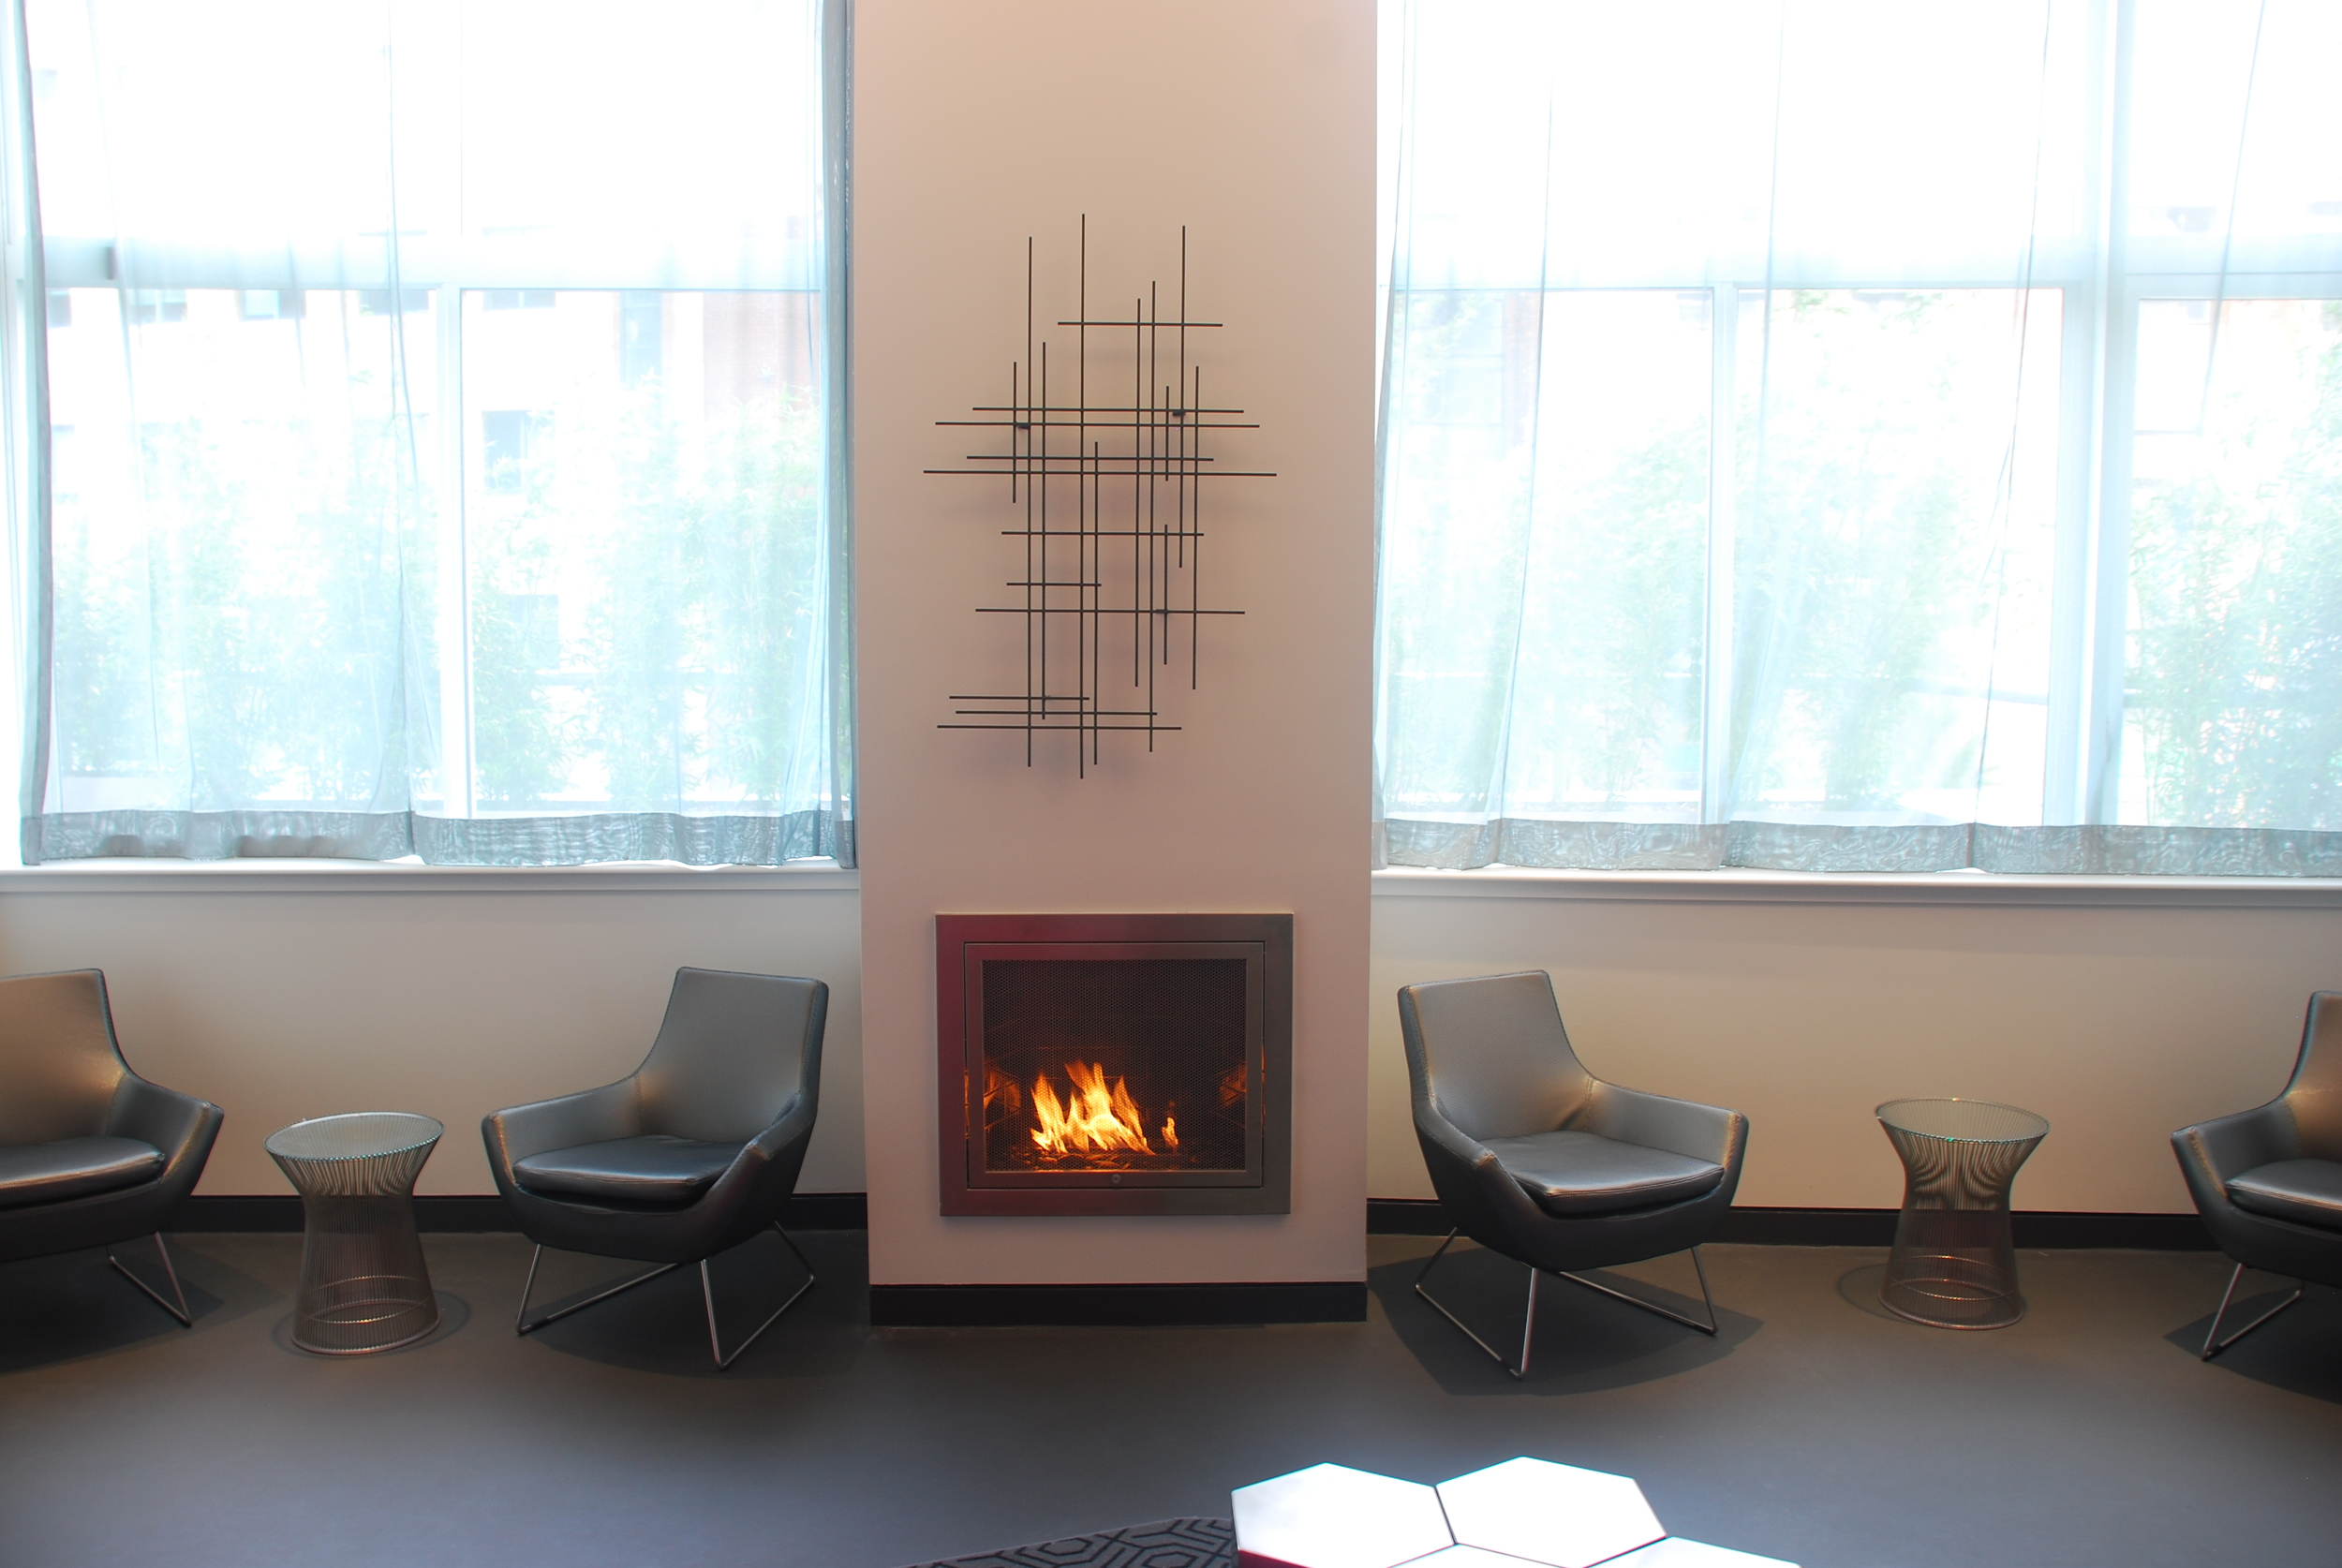 Apartment Fireplaces  Home Fireplaces  Residential by HearthCabinet